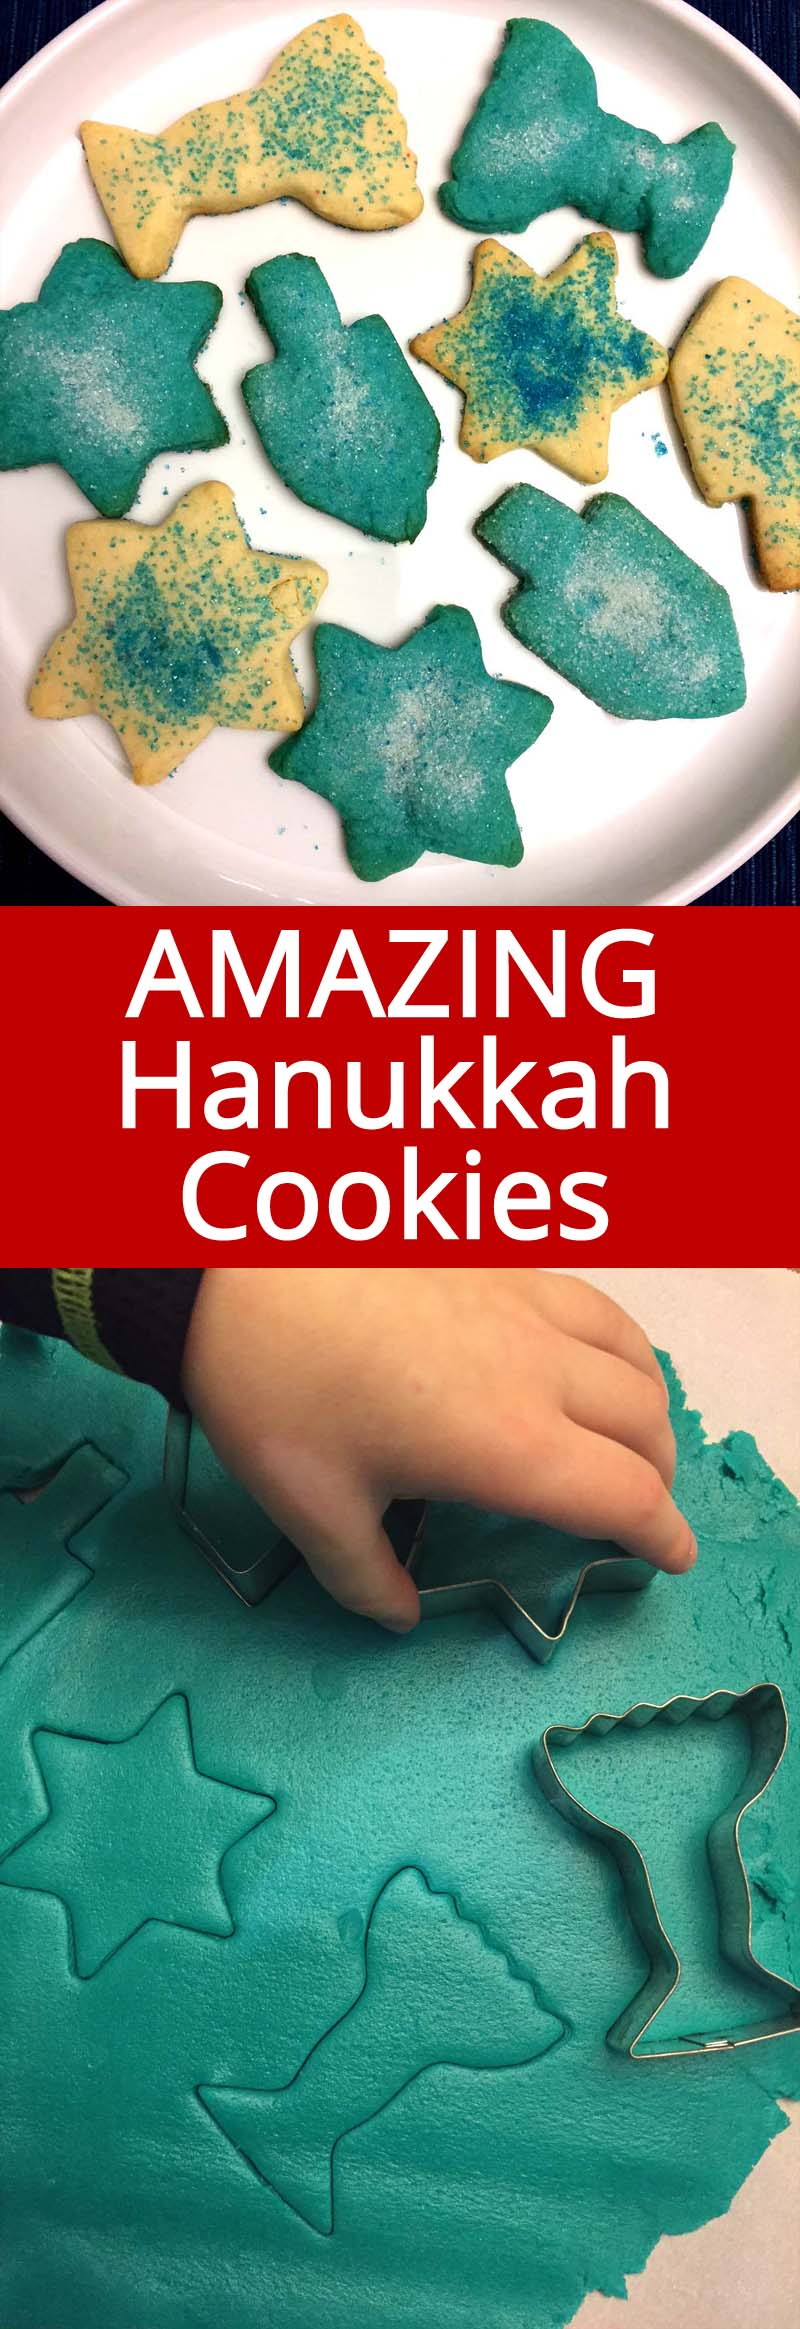 These traditional Hanukkah cookies are amazing! So easy to make, just roll, cut out and bake! This mouthwatering cookies are a hit of every Hanukkah party! #Hanukkah #Chanukkah